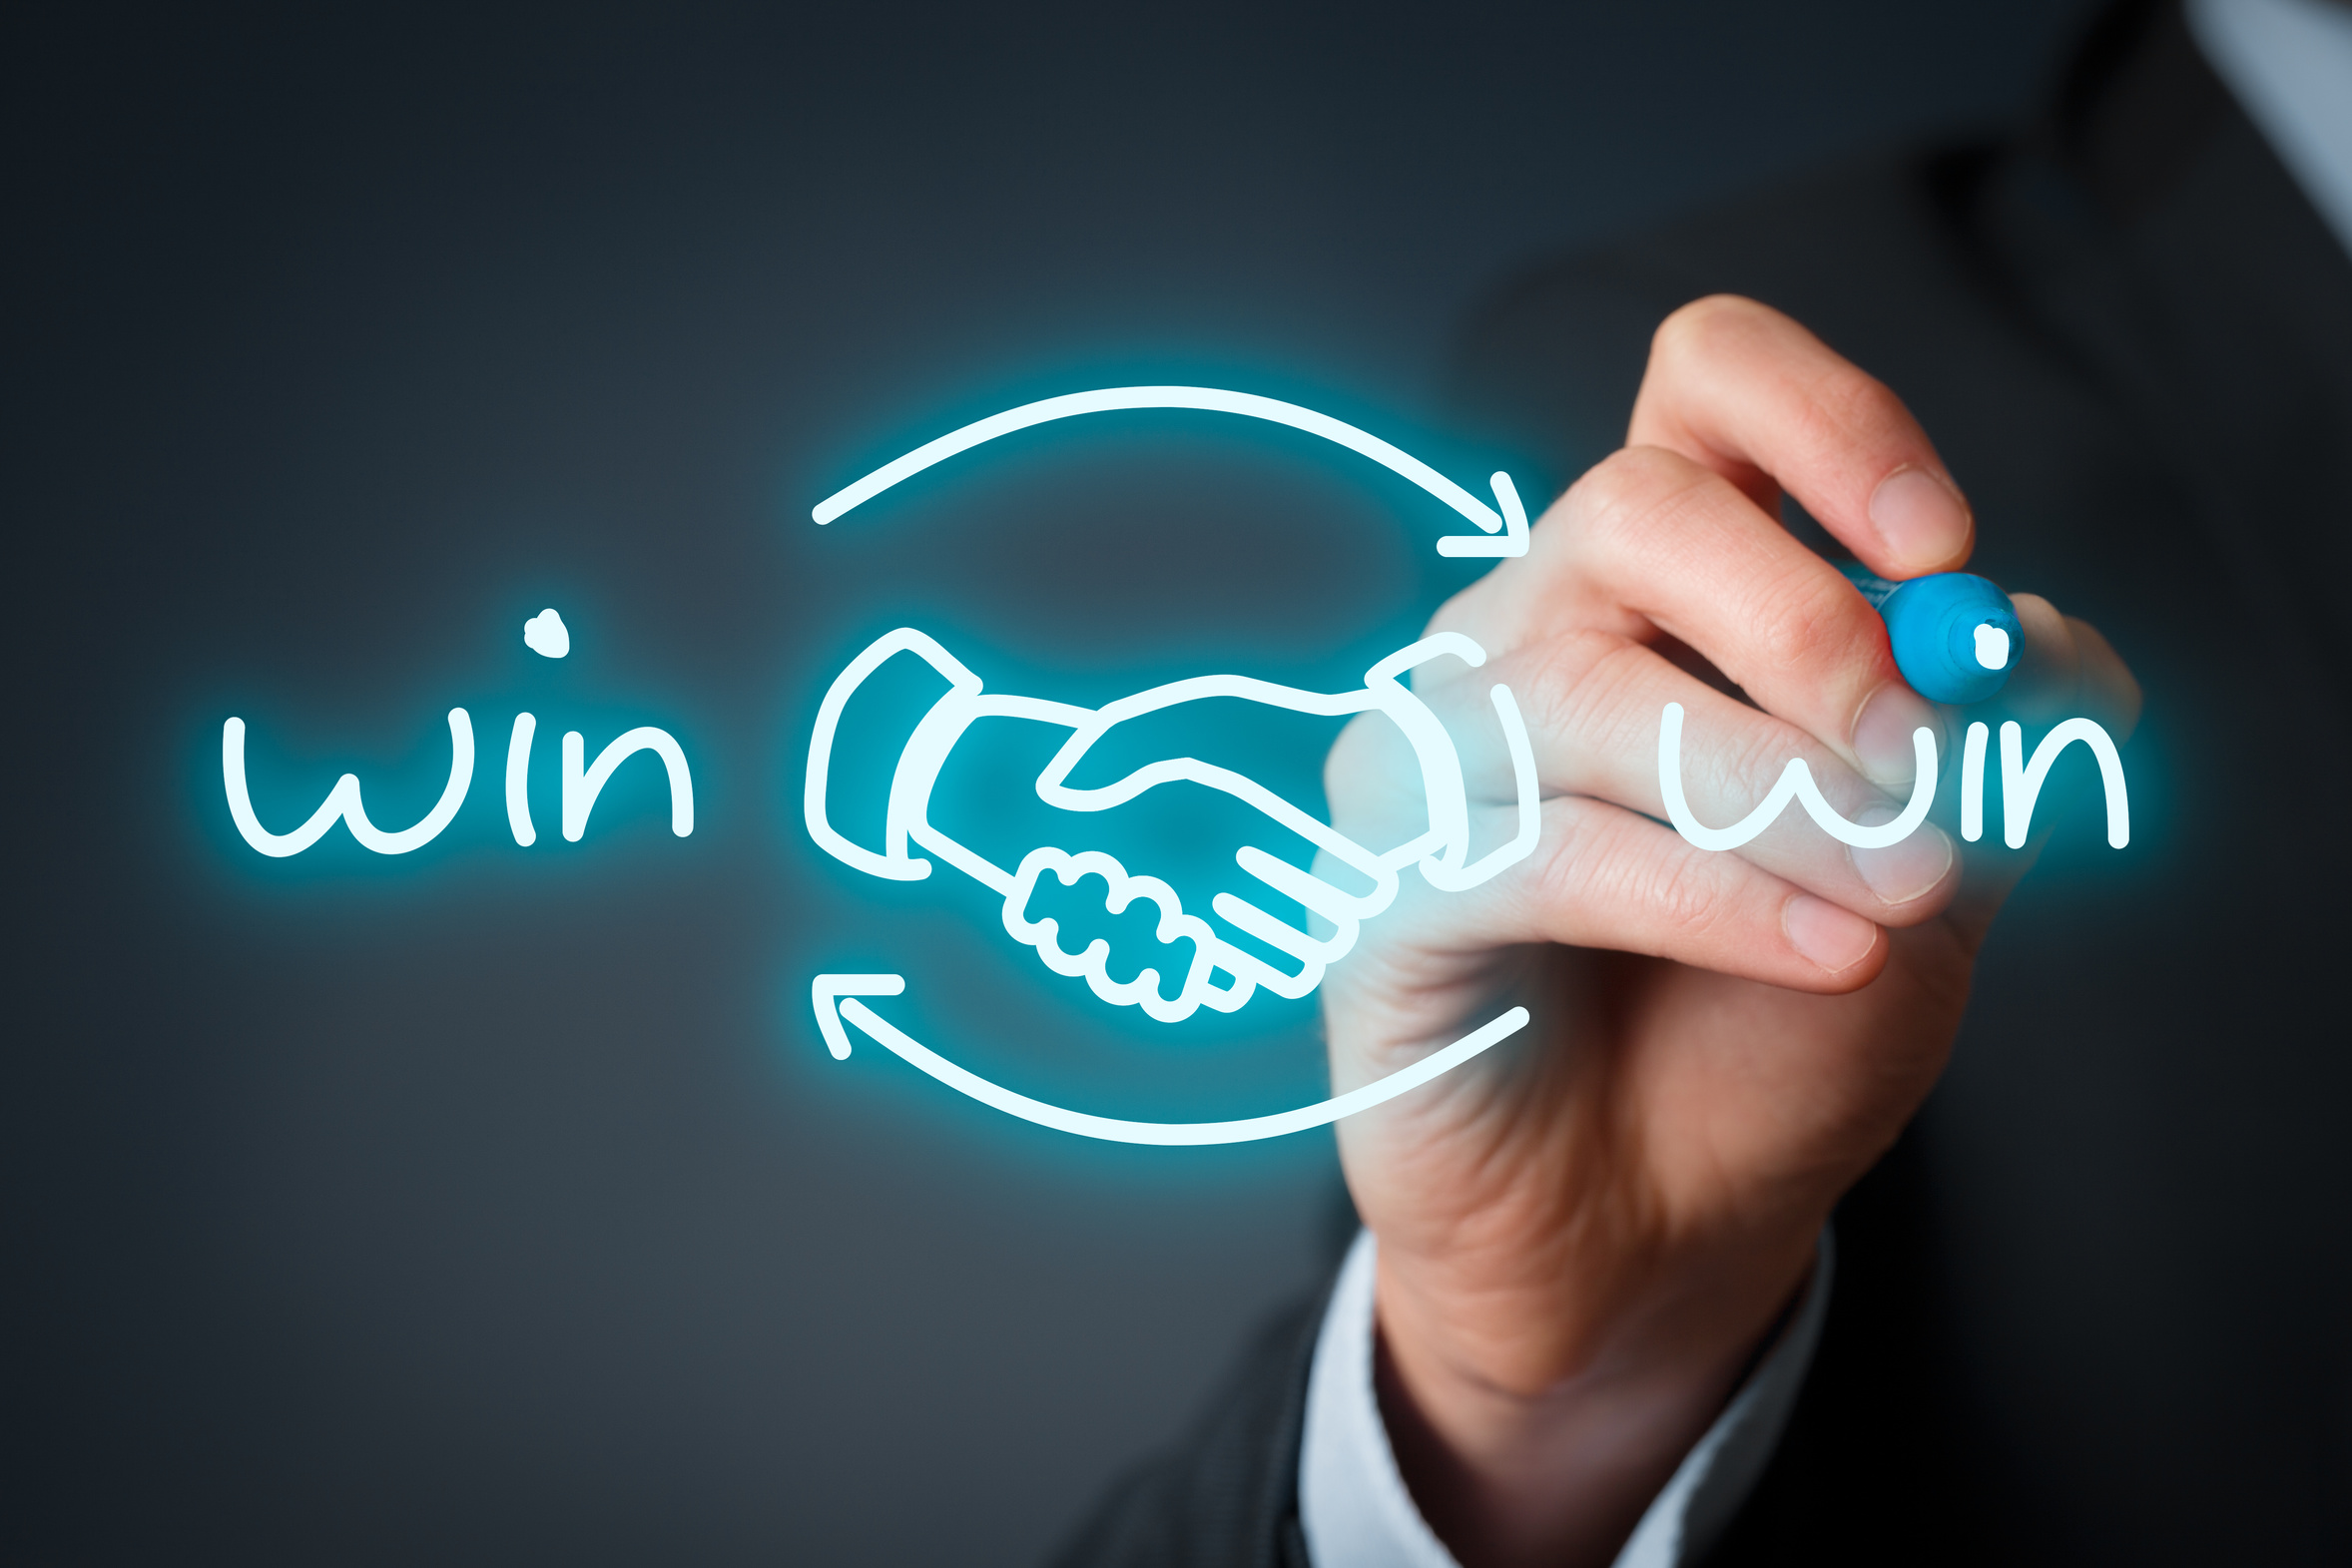 Win-win partnership strategy concept. Businessman draw win-win scheme with handshake partnership agreement.